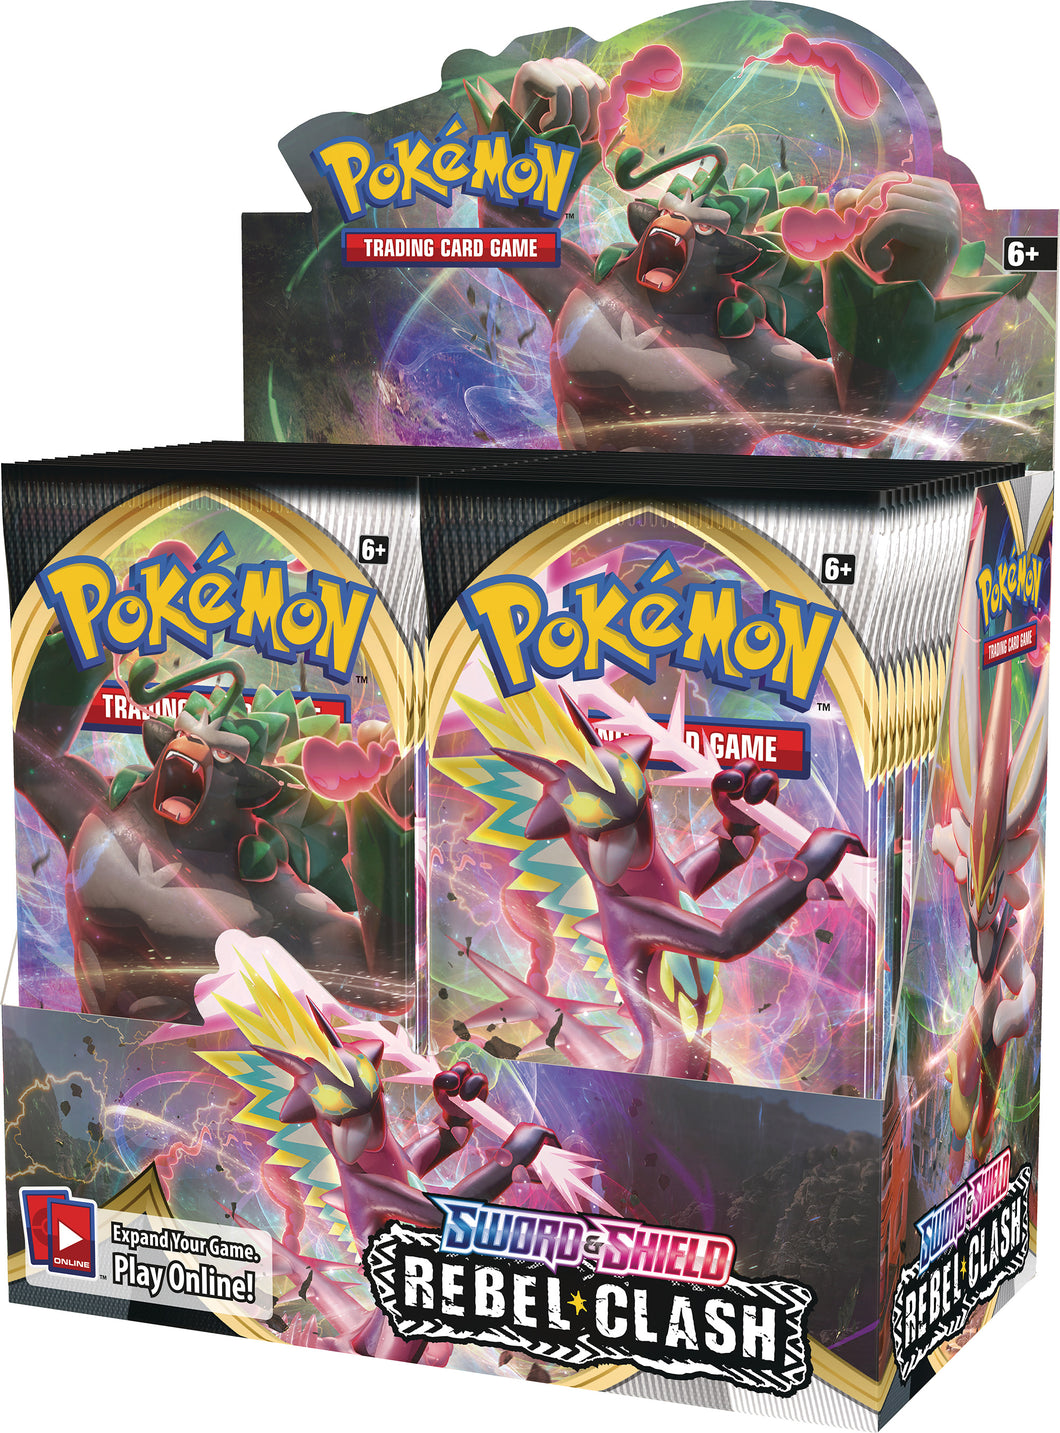 Pokemon TCG Sword & Shield Rebel Clash Booster Box SWSH2